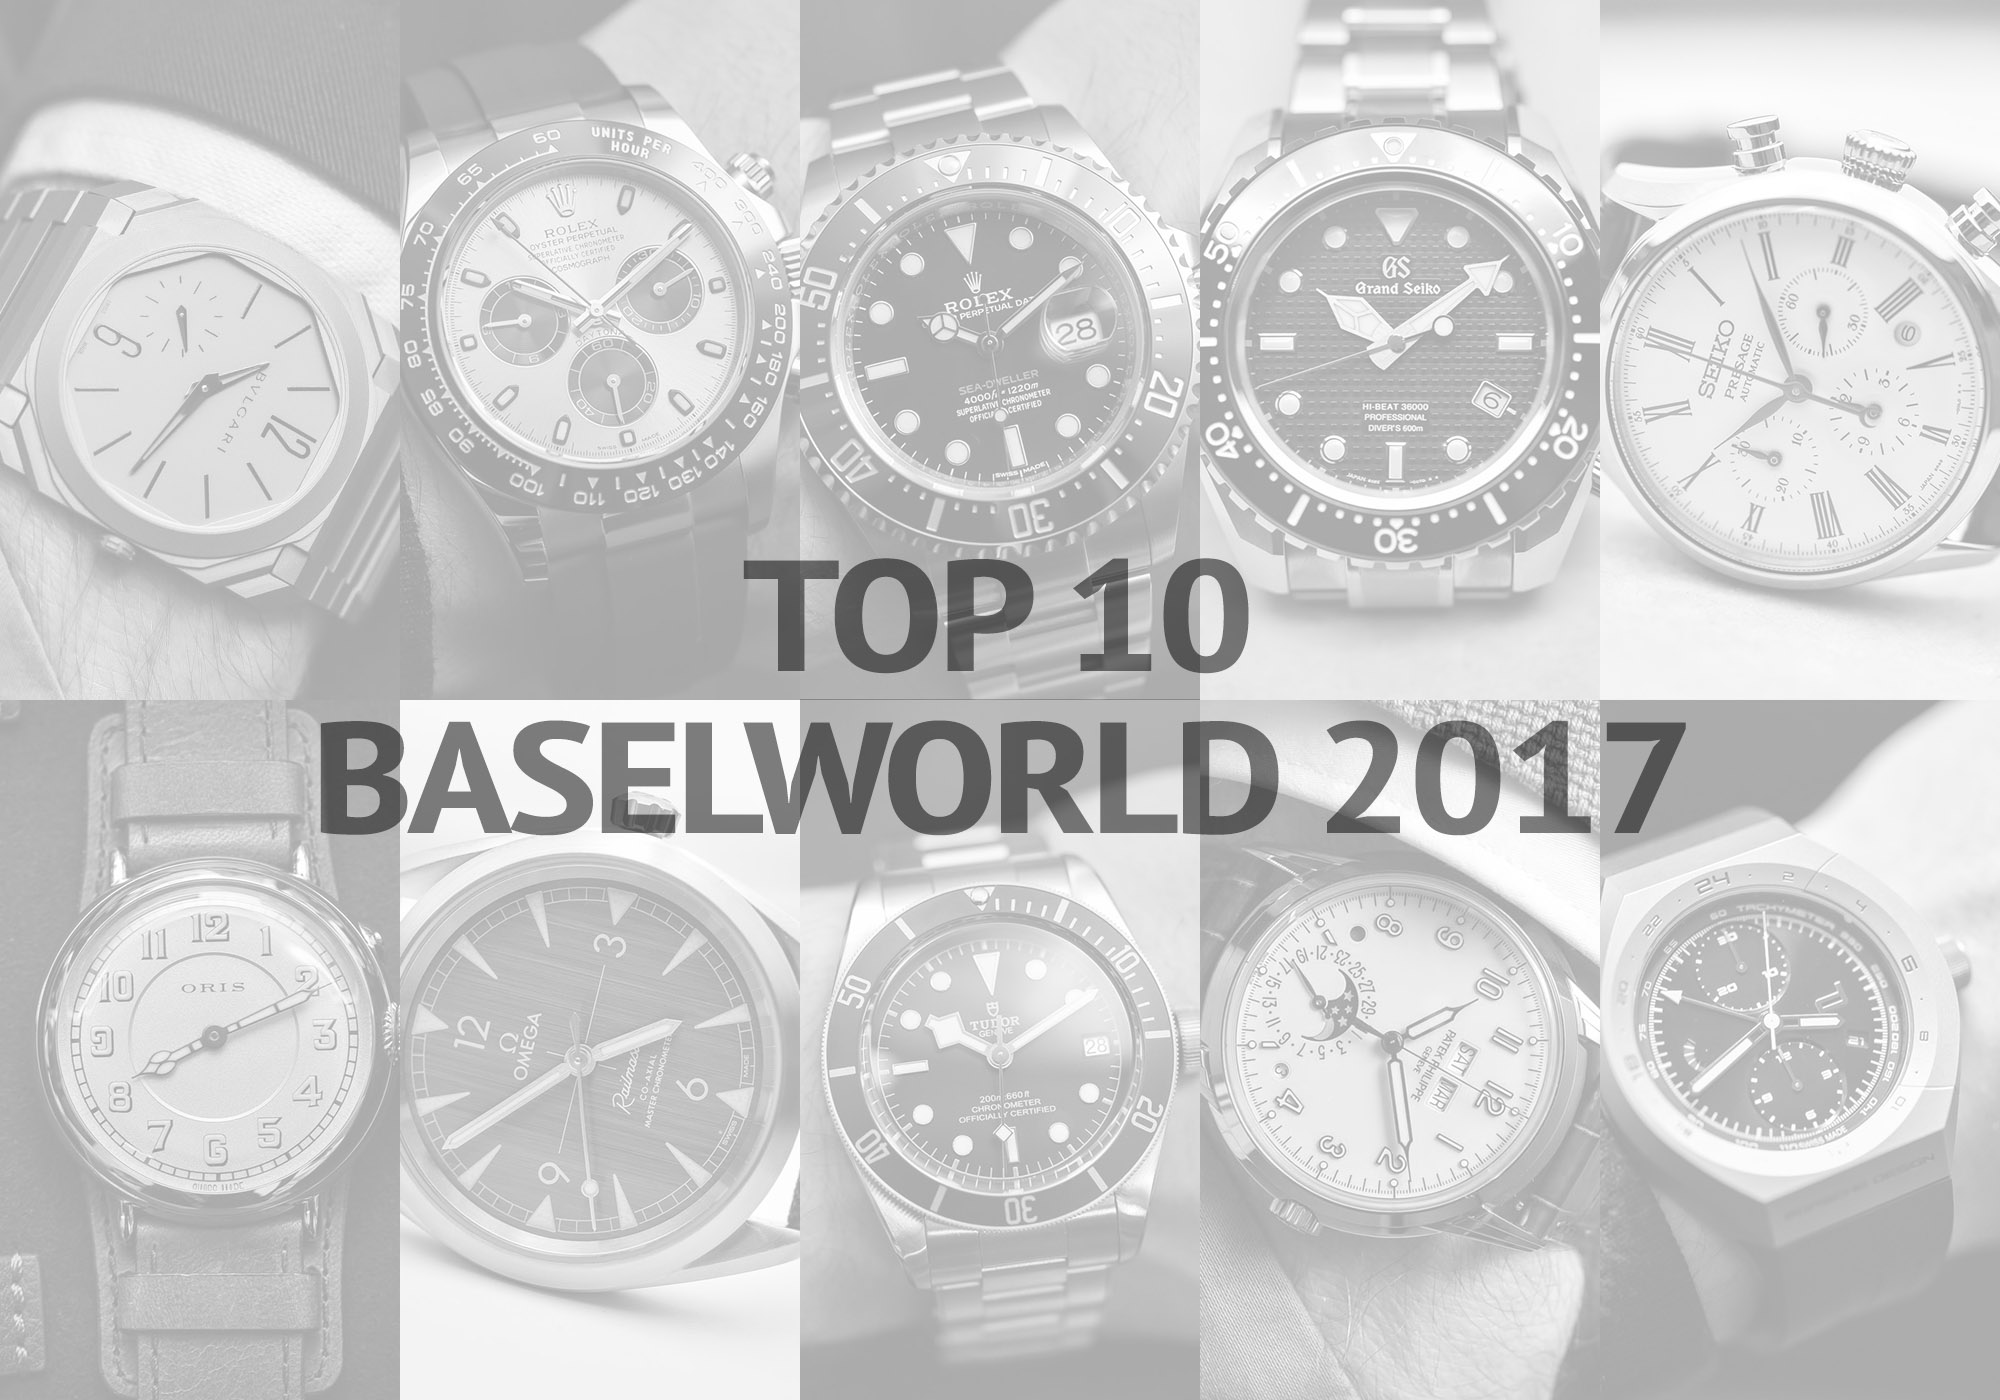 Top 10 Baselworld 2017 Frank Geelen